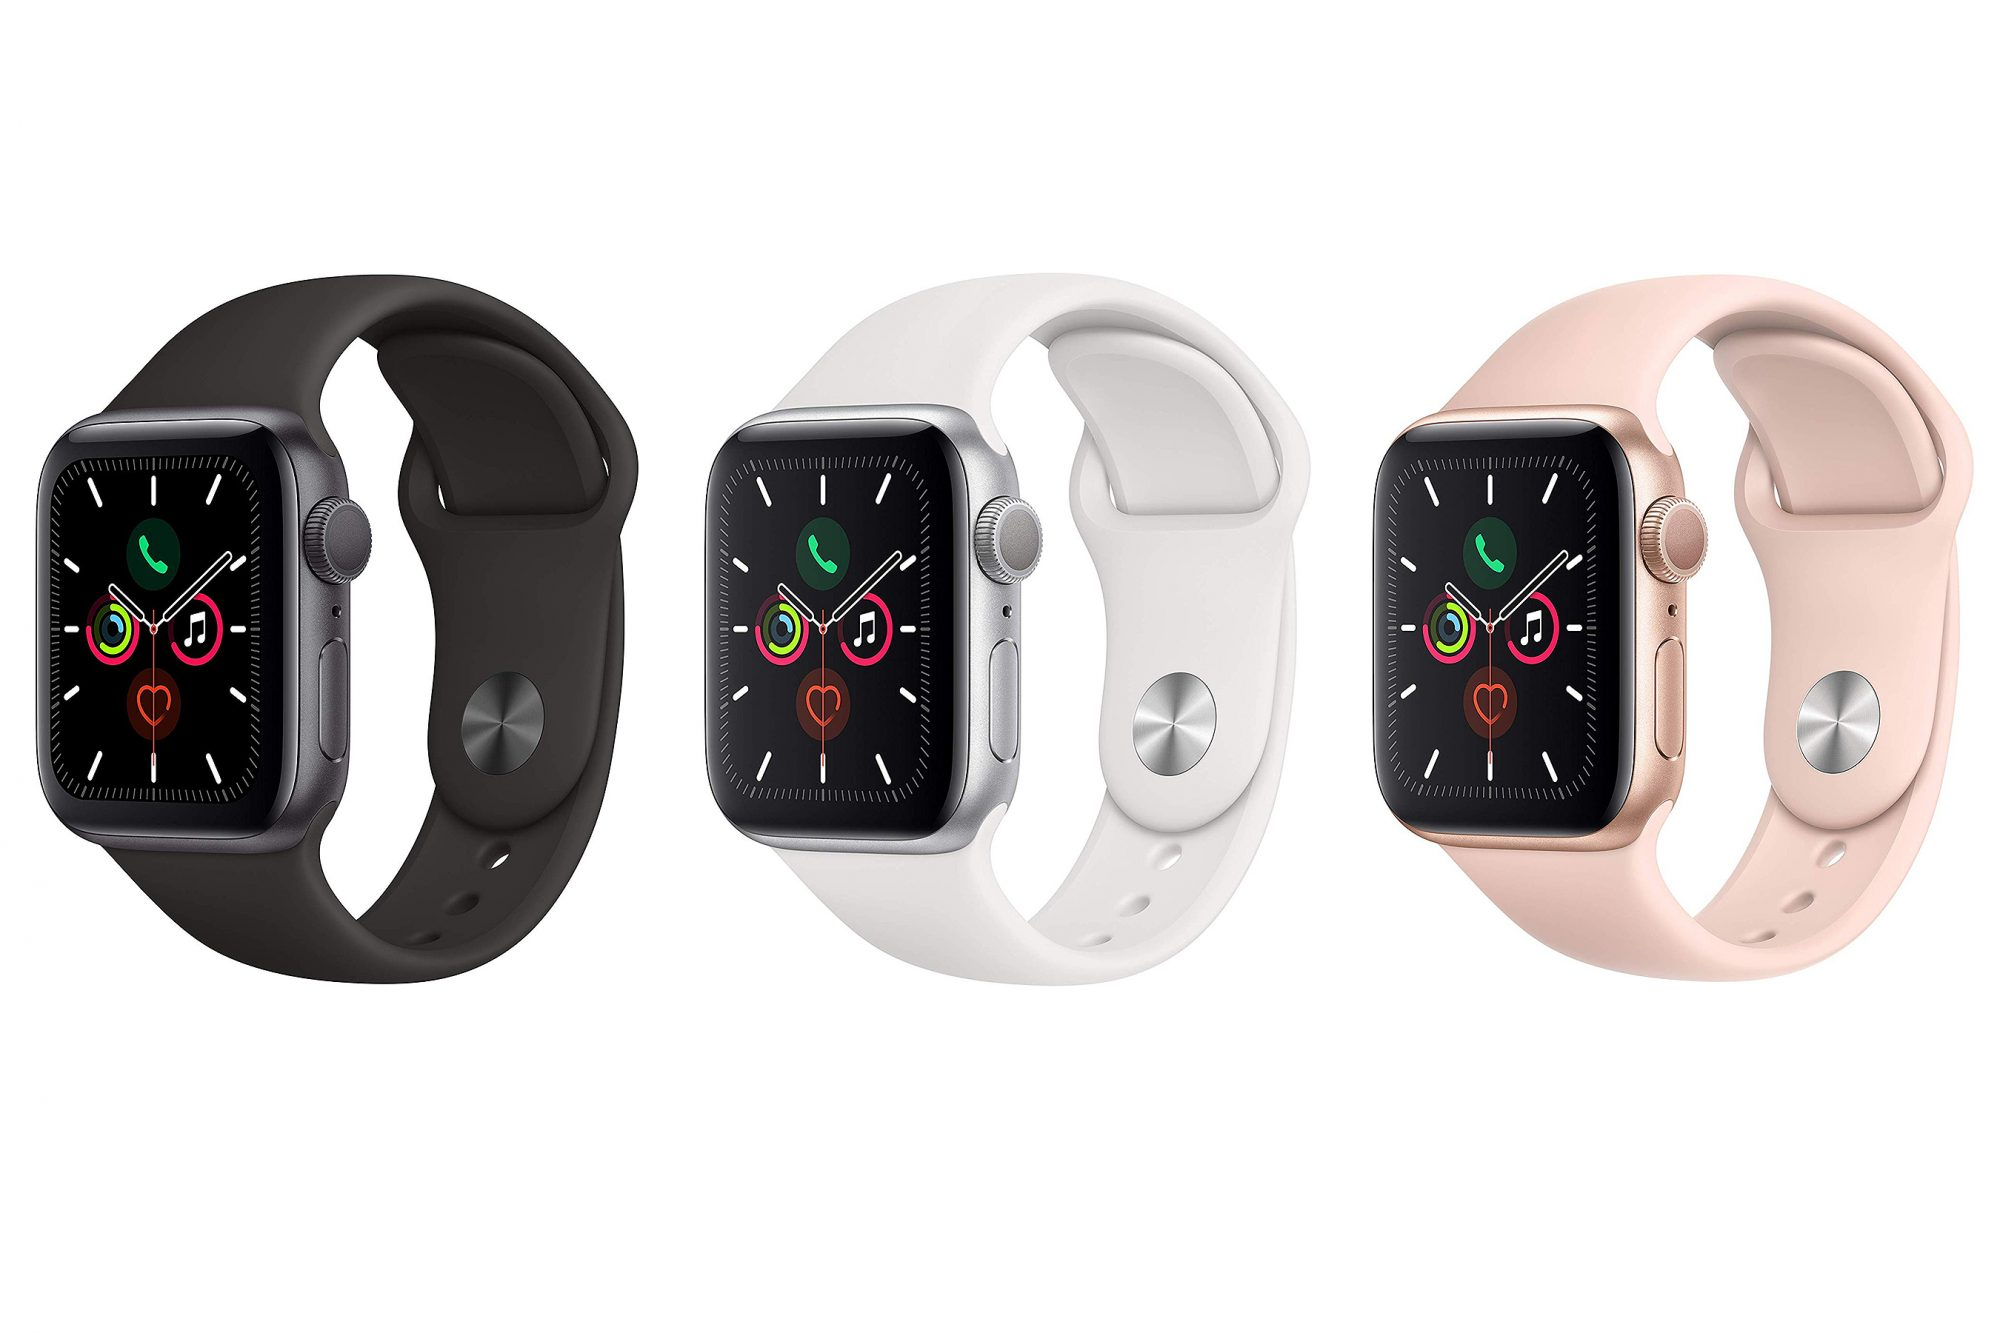 Shop Apple Watch Deals During Cyber Week 2019 | PEOPLE.com